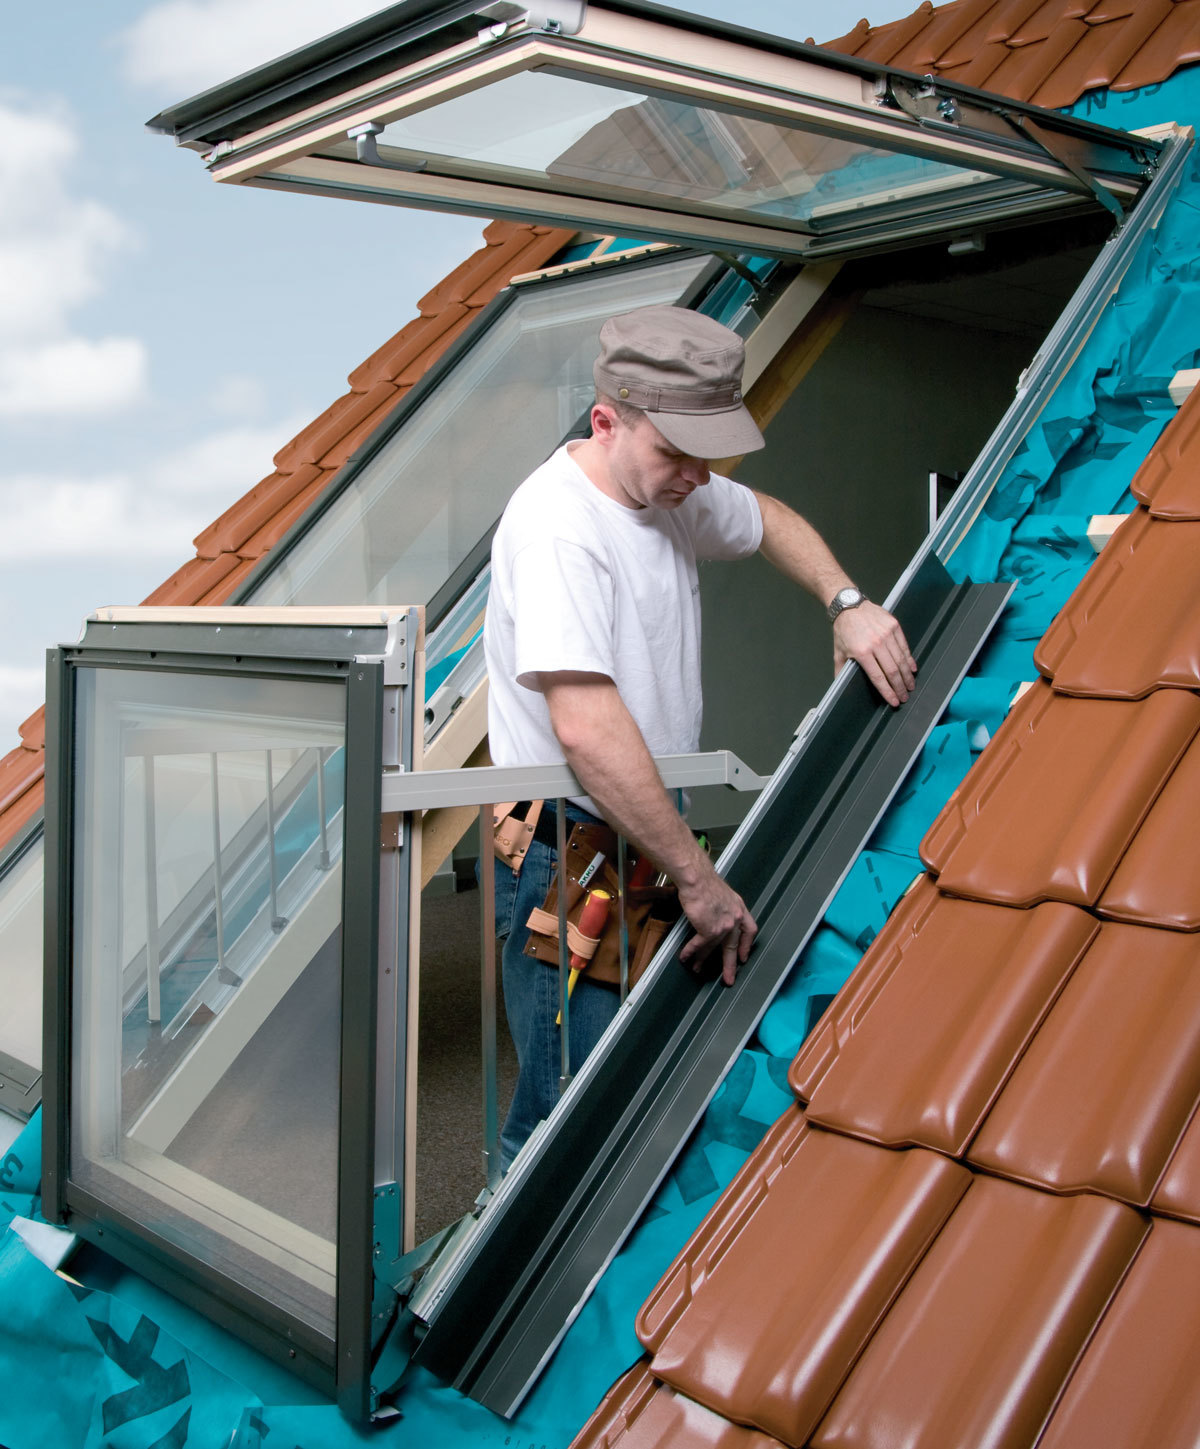 Balcony roof window installer